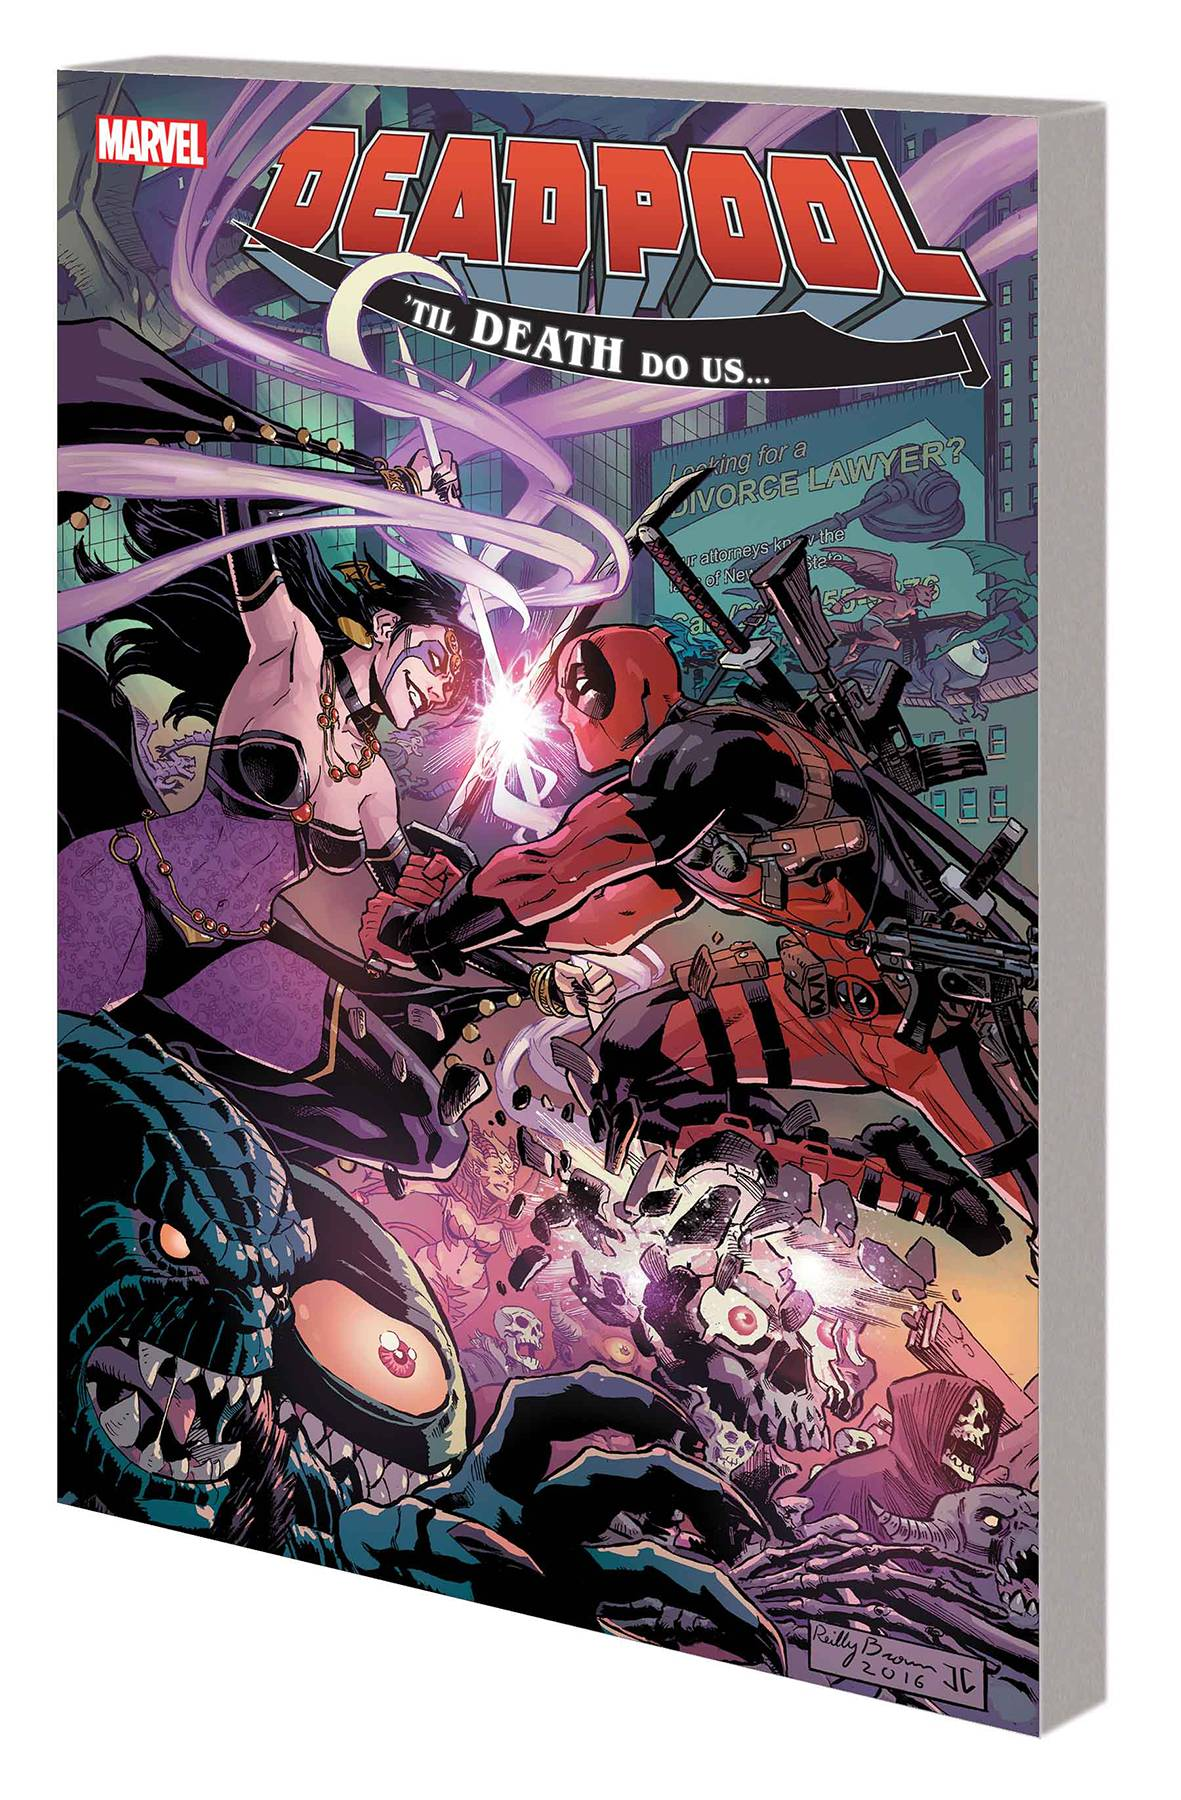 DEADPOOL: WORLD'S GREATEST VOL 08: 'TIL DEATH DO US...